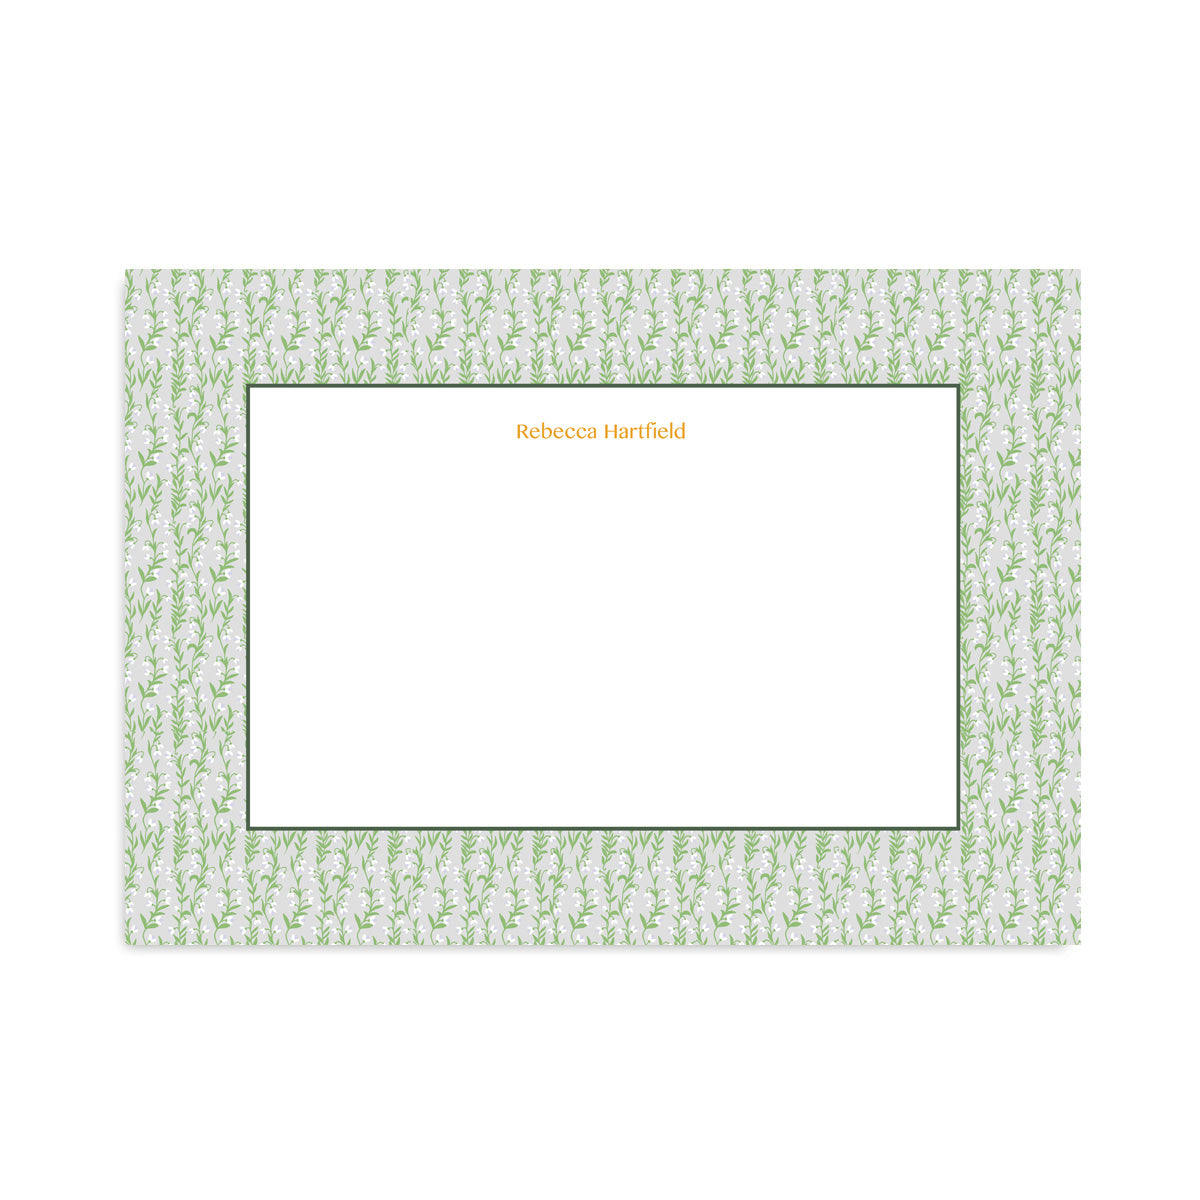 Personalised Grey Floral Meadow Notepaper Set-Notepaper Sets-Mode Prints